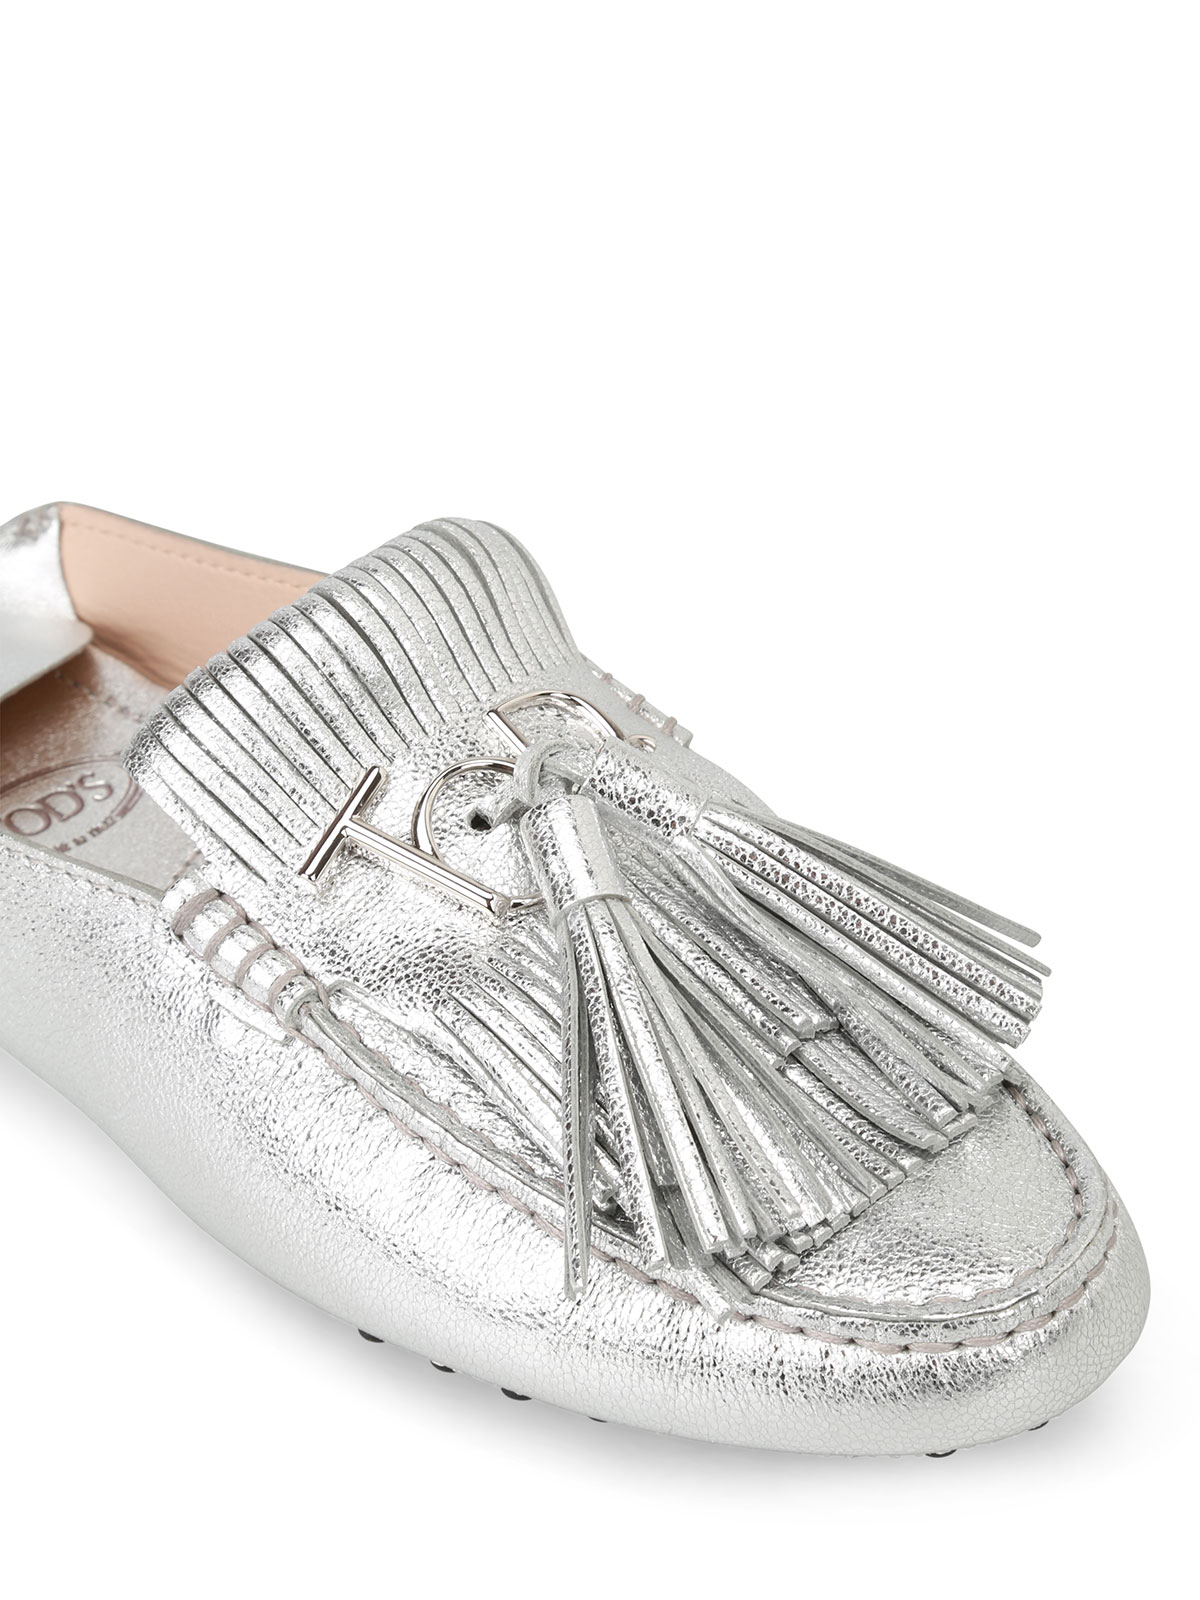 62e297ed10d Tod S - Fringed silver loafers with tassels - Loafers   Slippers ...